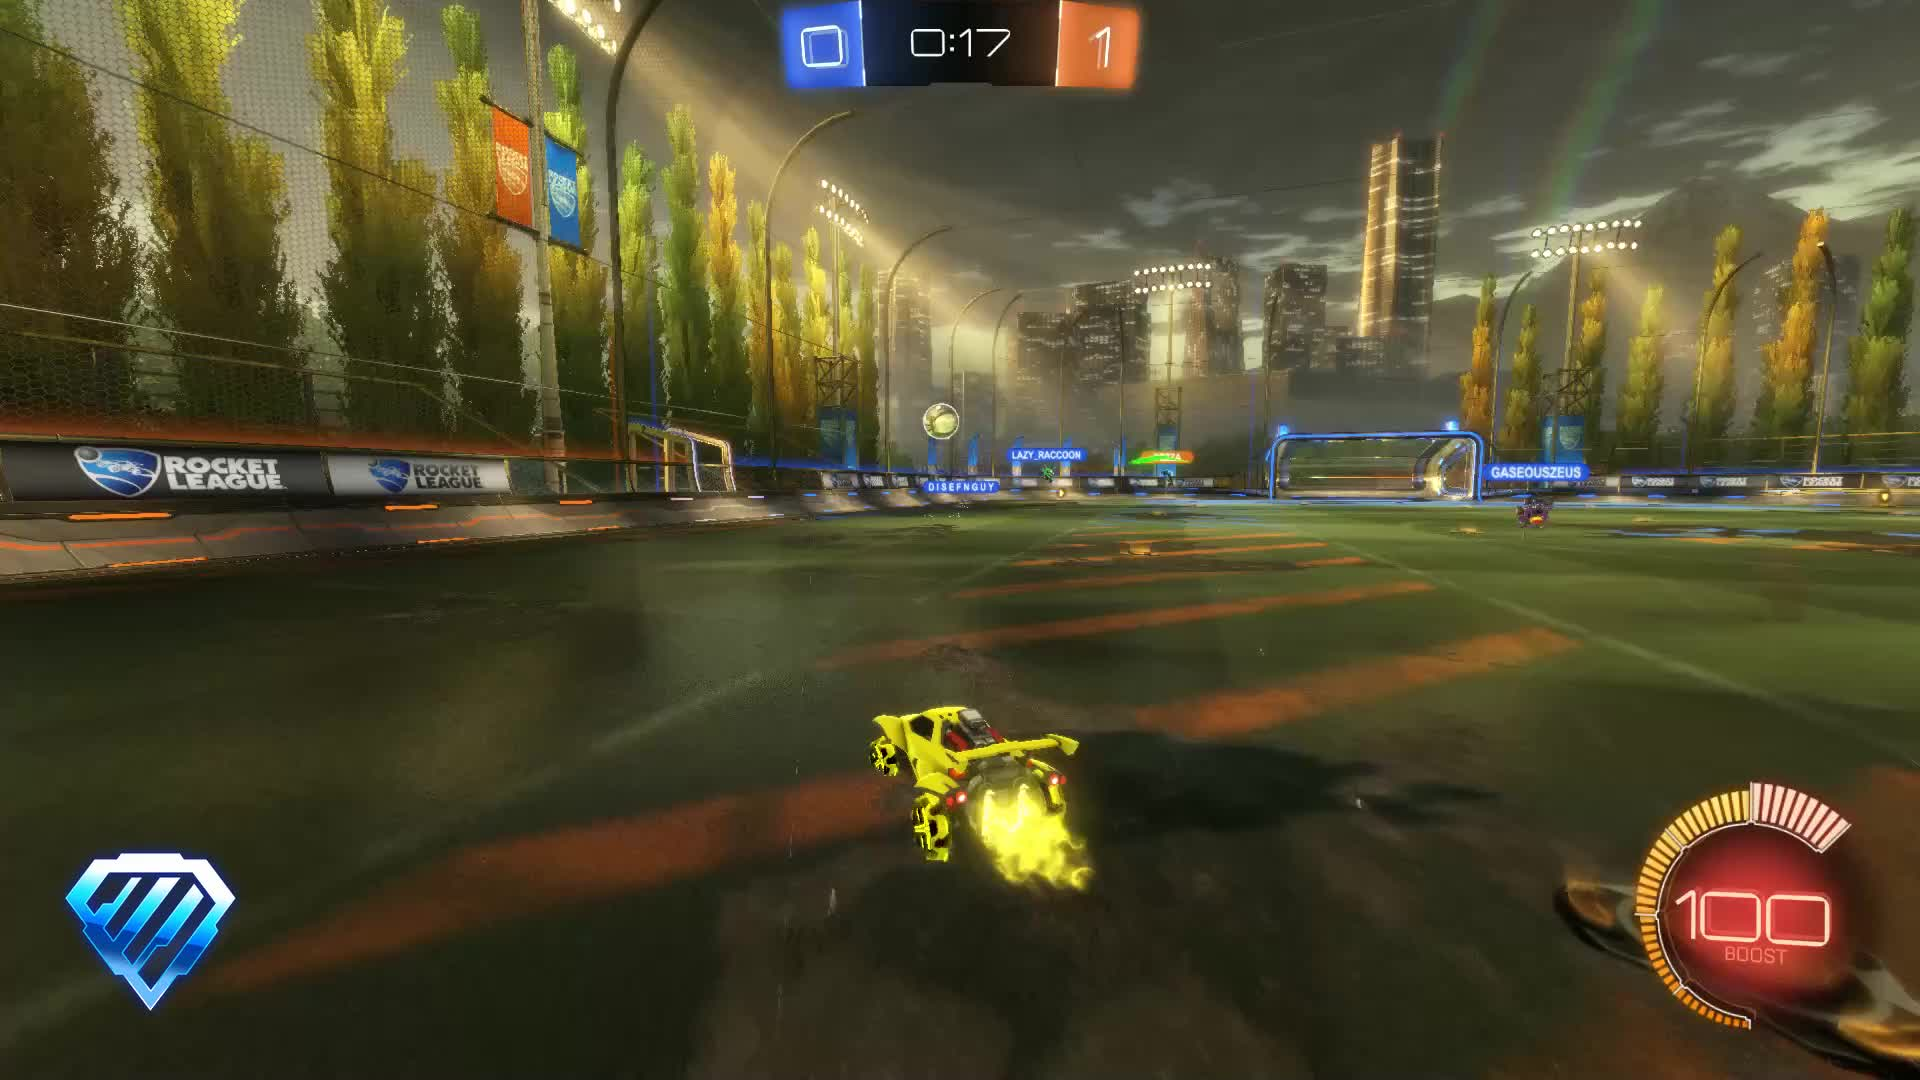 Assist, Gif Your Game, GifYourGame, Rocket League, RocketLeague, xGREEN, Assist 2: xGREEN GIFs